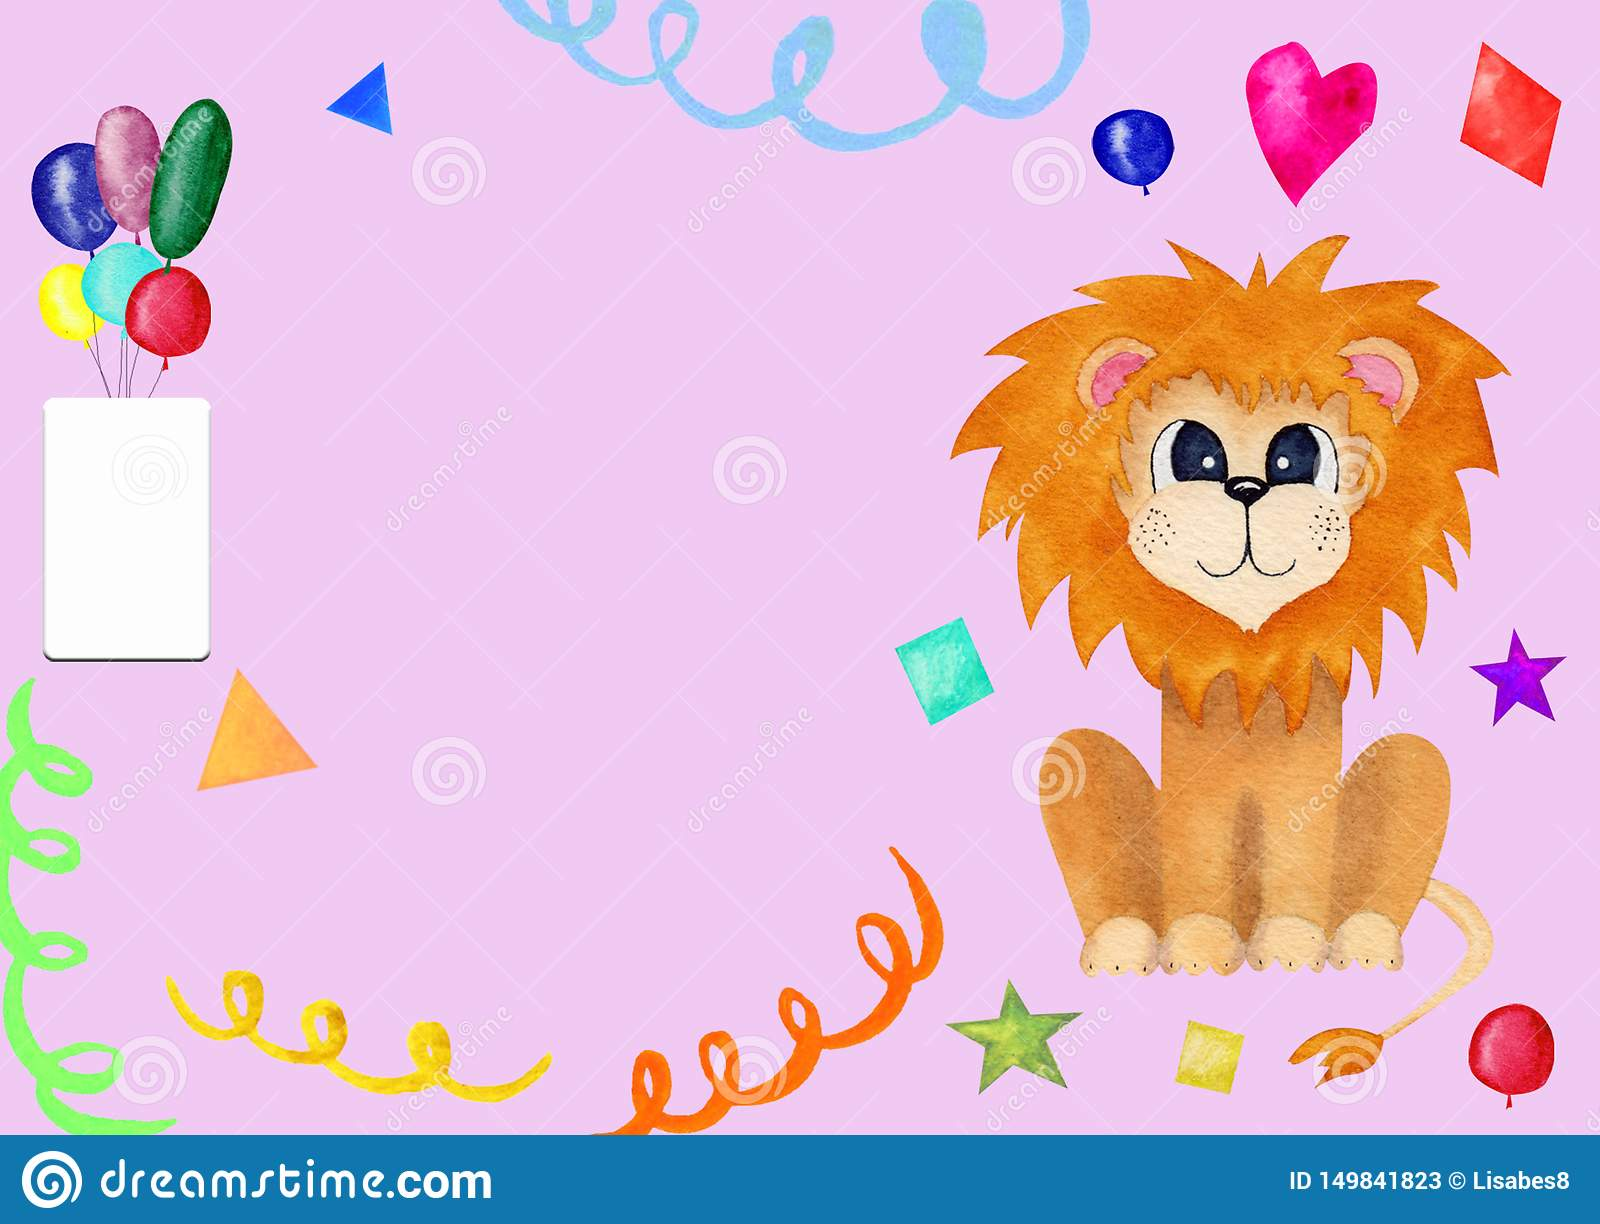 Cute Greeting Card For Kids With Lion Birthday Invitation